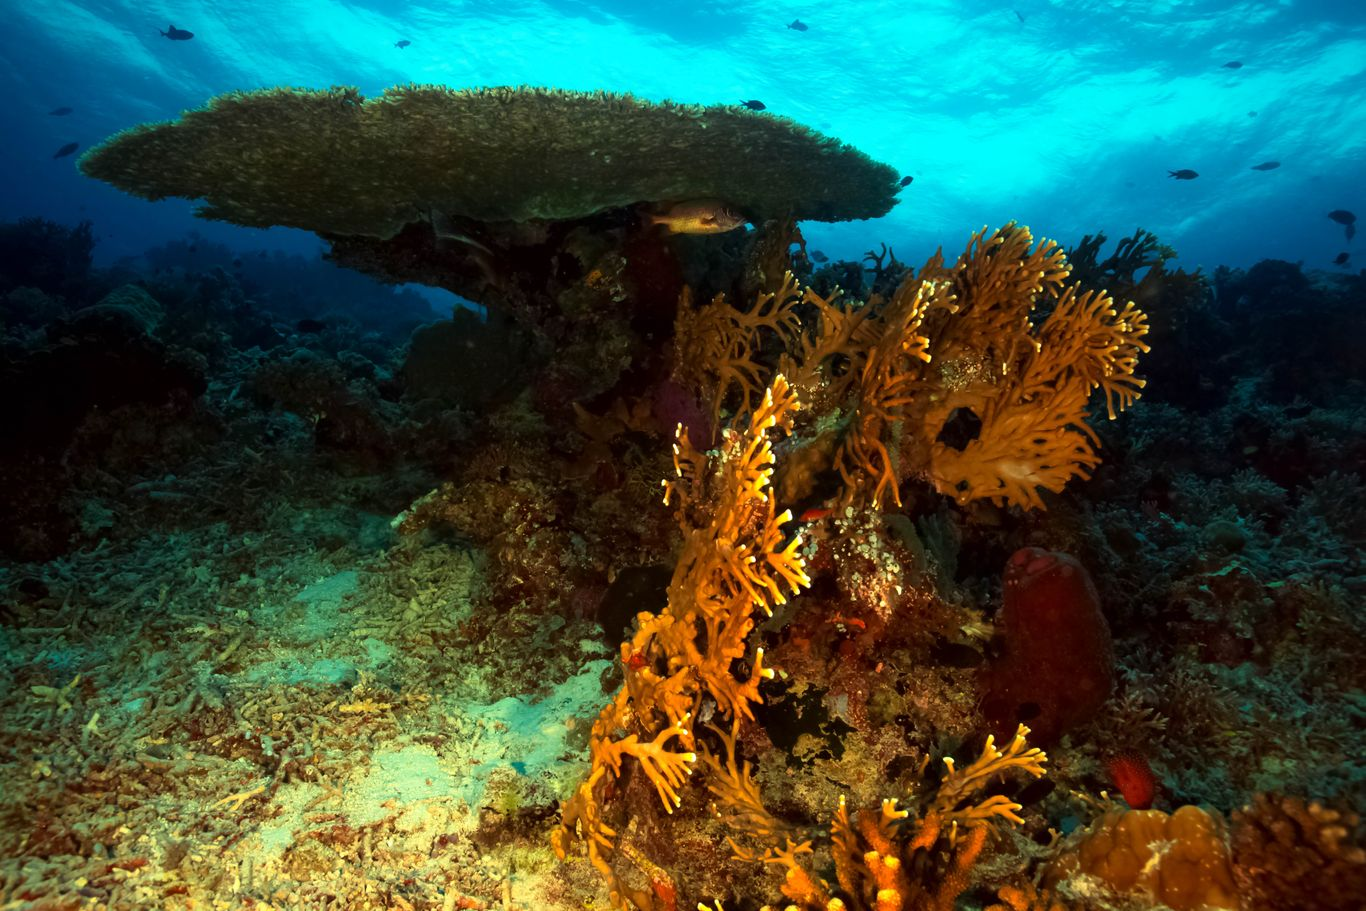 Table corals on the seafloor at the Tubbataha Reefs Natural Park, one of the UNESCO World Heritage Sites in the Philippines